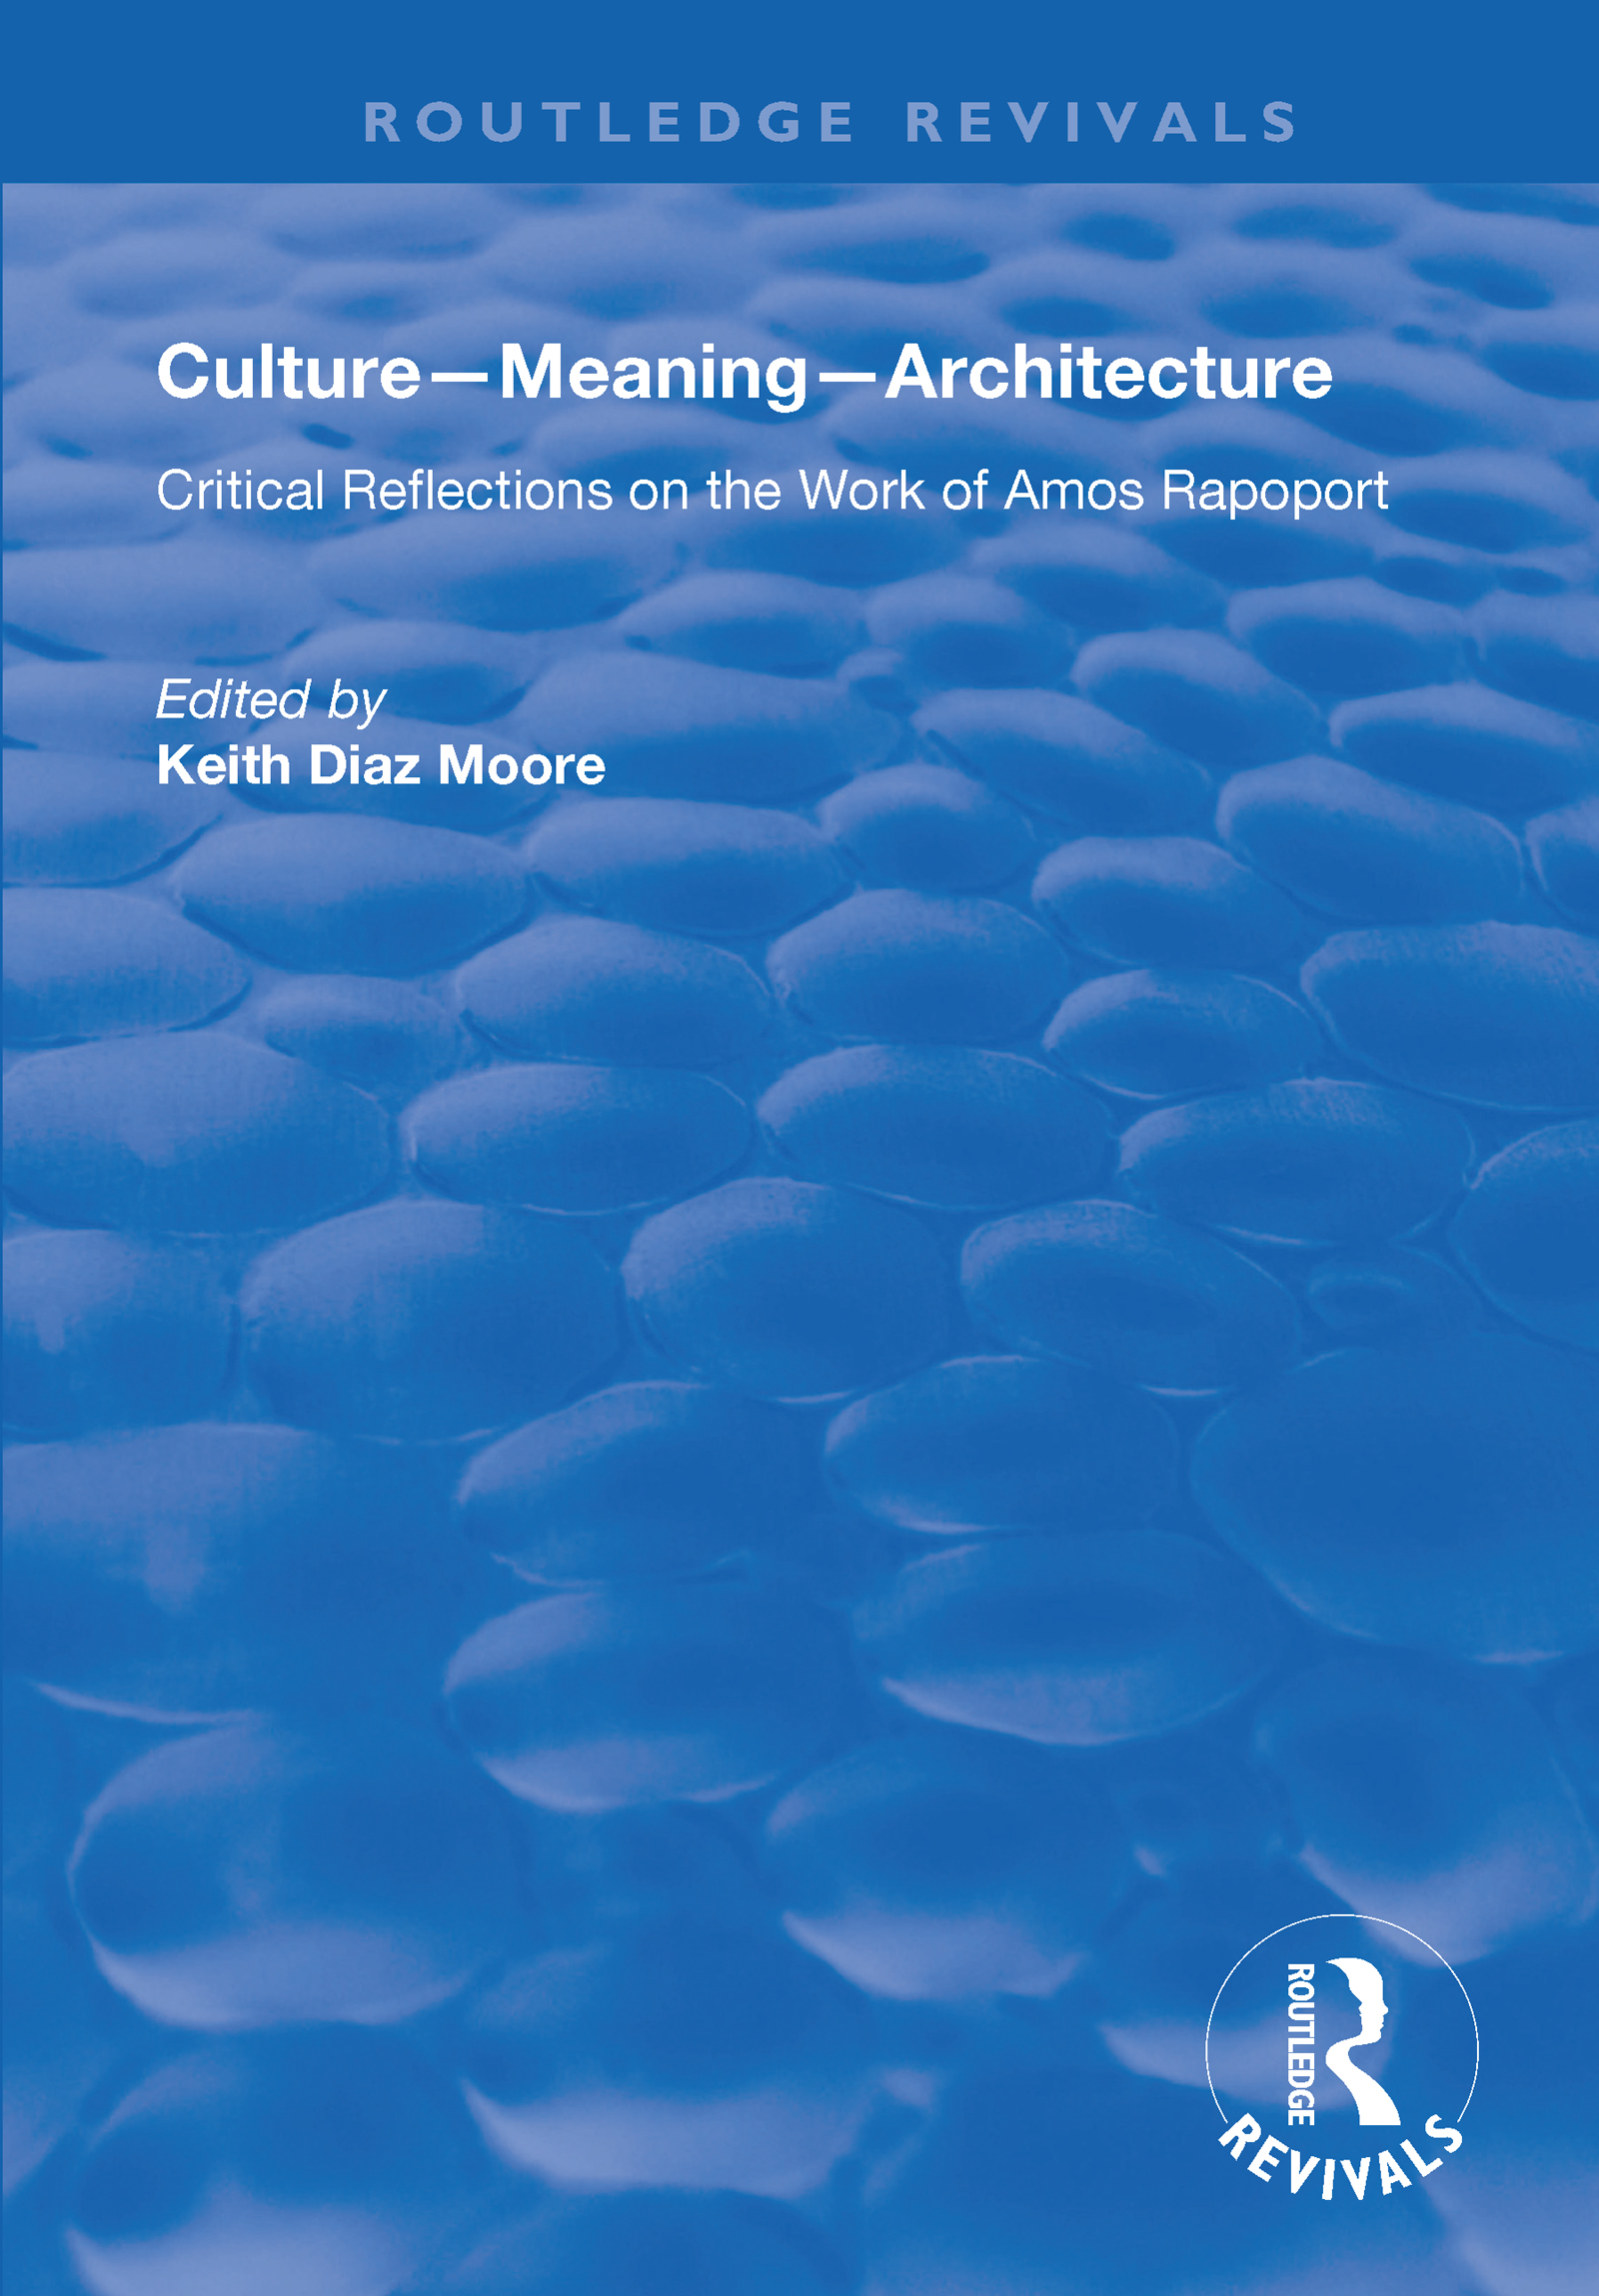 Culture-Meaning-Architecture